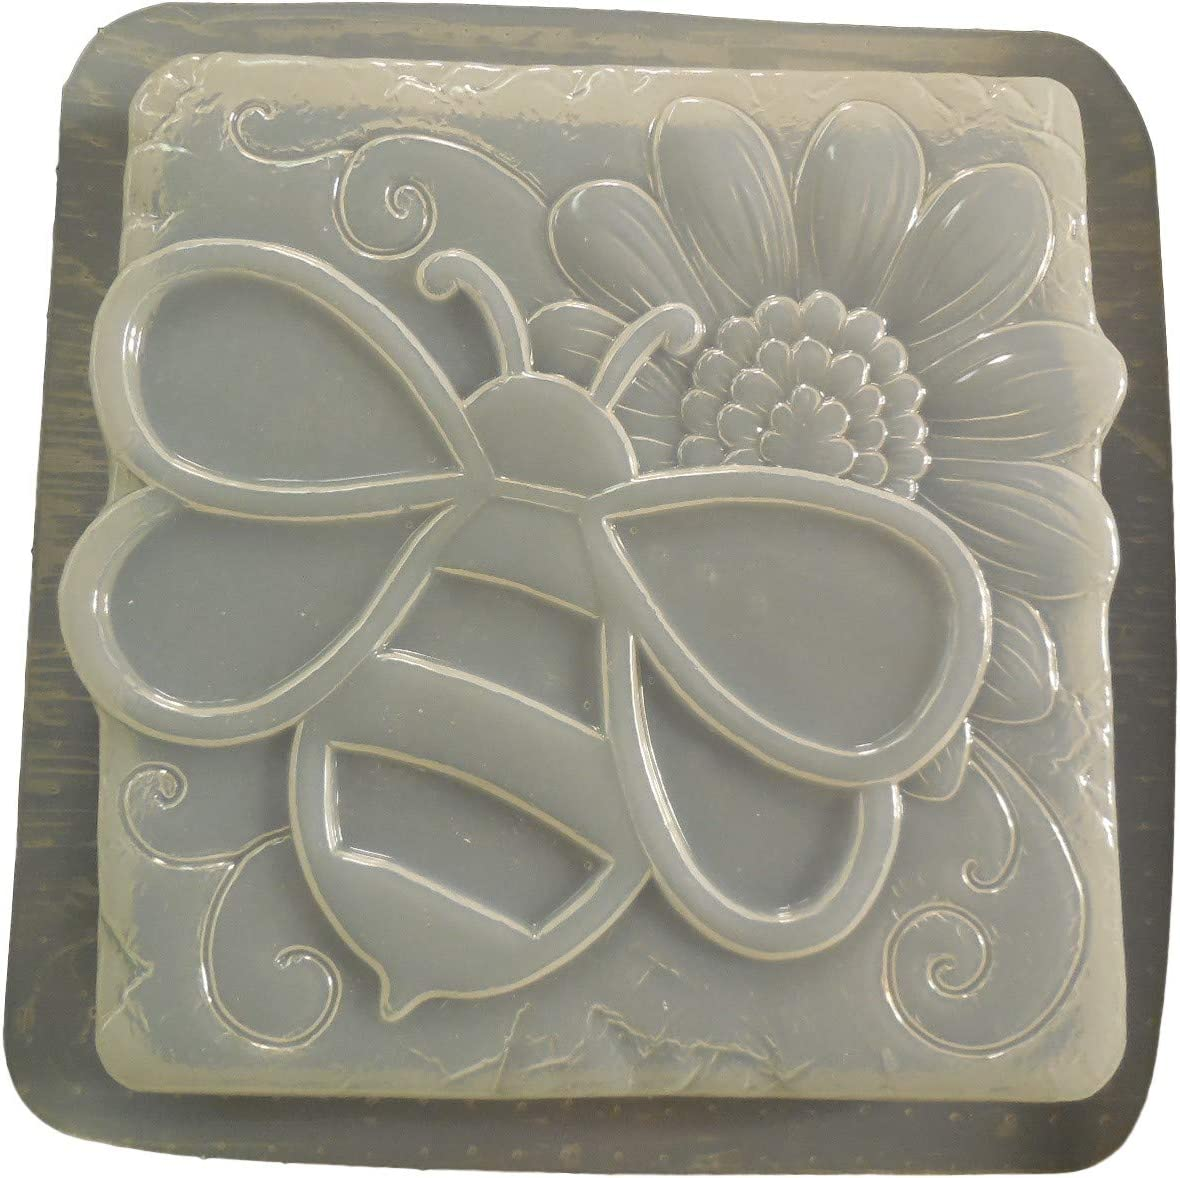 Bumble Bee Max 46% Direct stock discount OFF with Sunflower Stepping 1305 Mold Stone